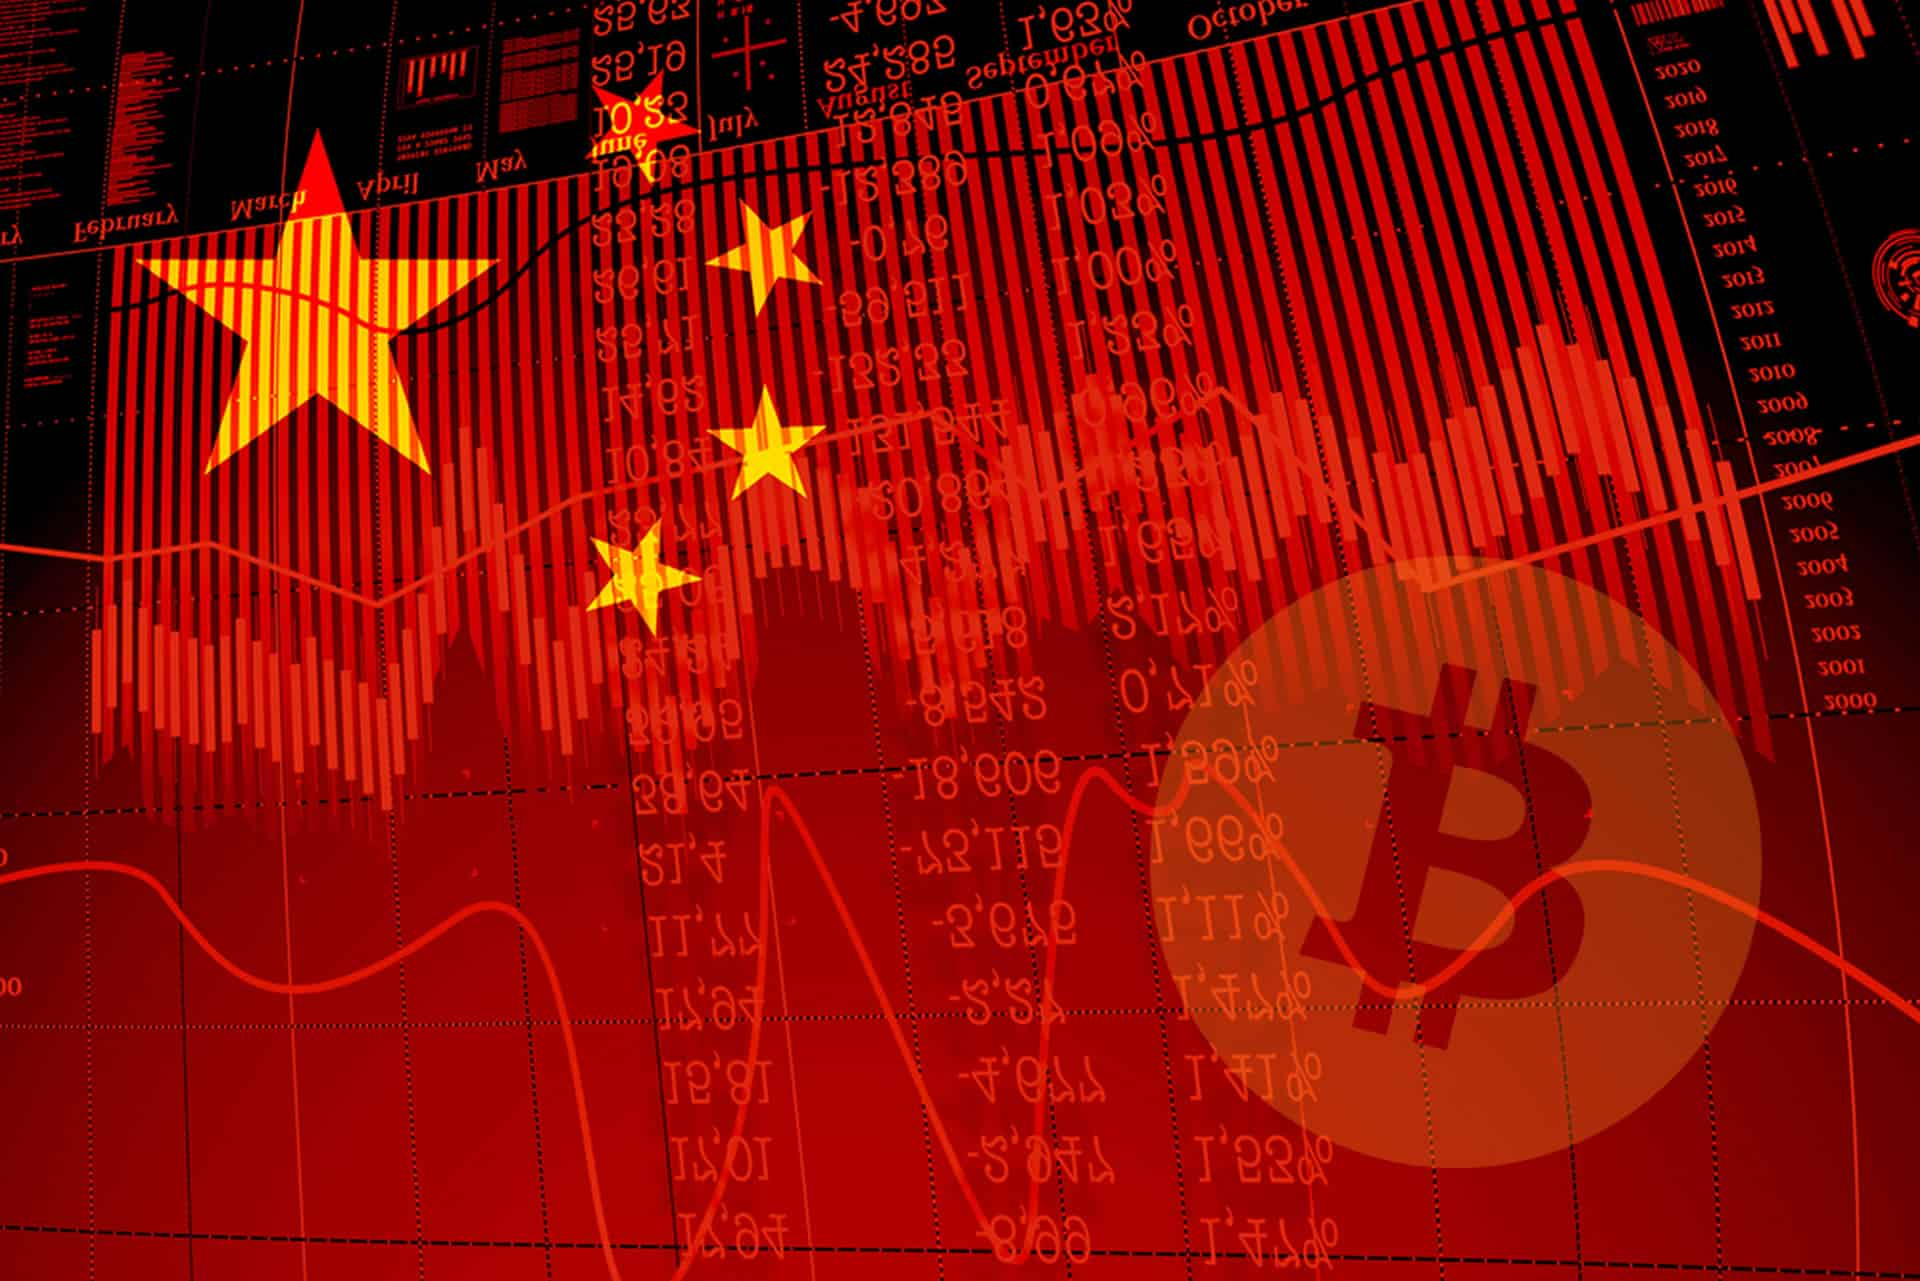 China and Hong Kong Cracks Down on Crypto as Markets See Red